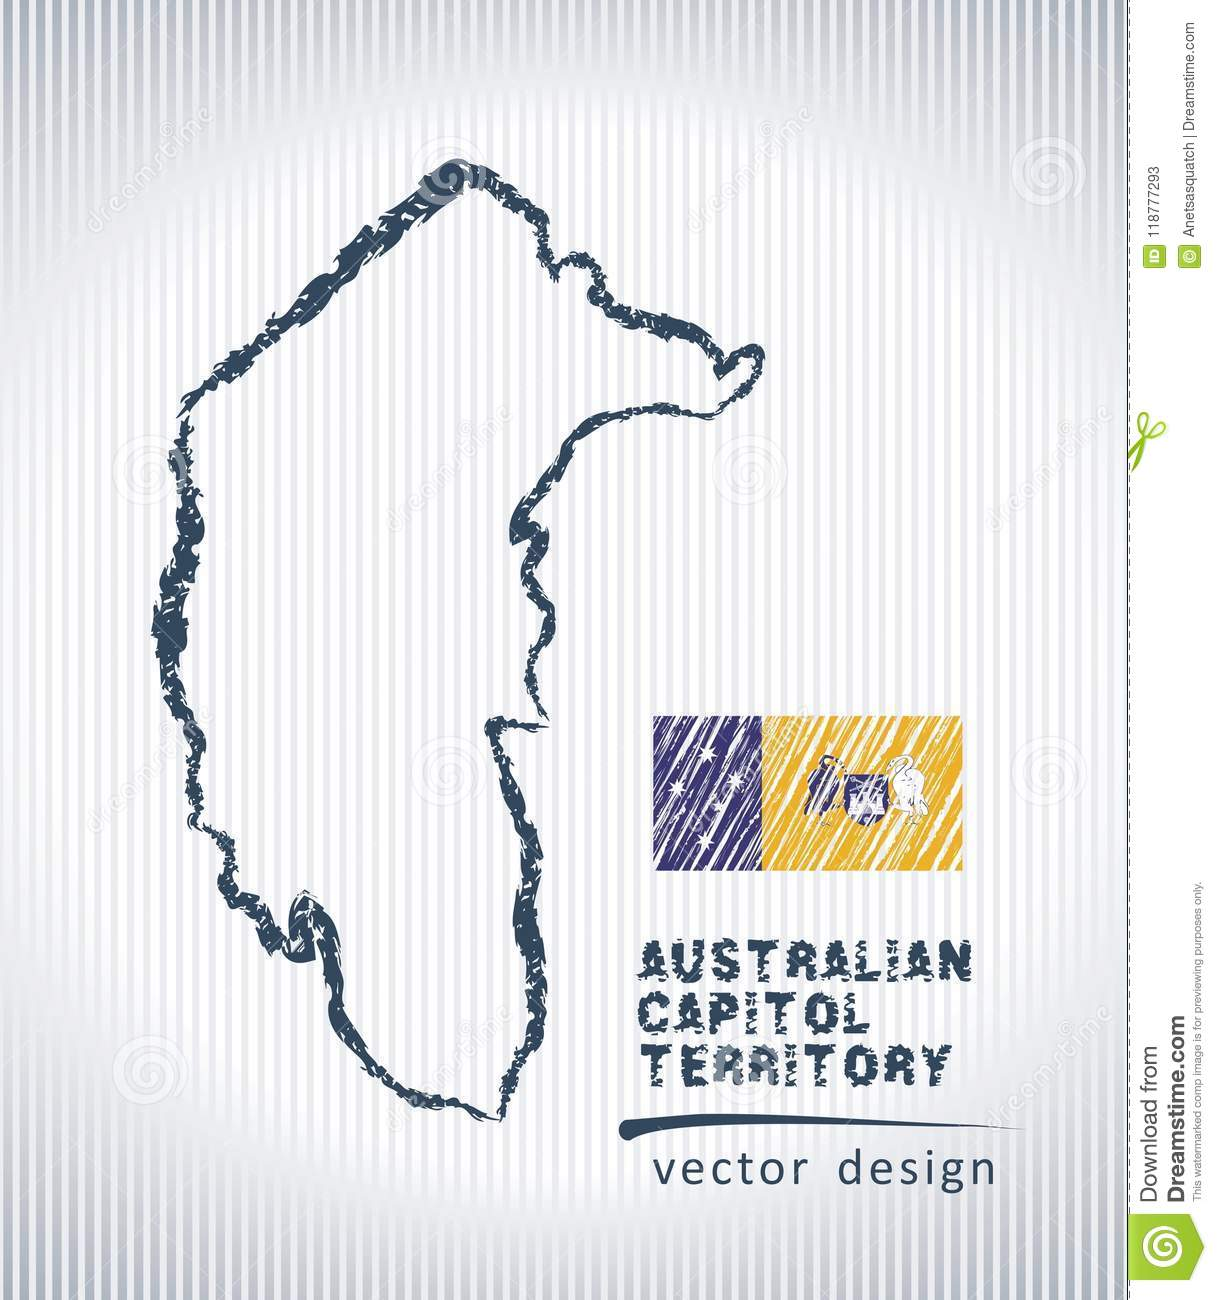 Australian Capital Territory vector chalk drawing map isolated on a white background